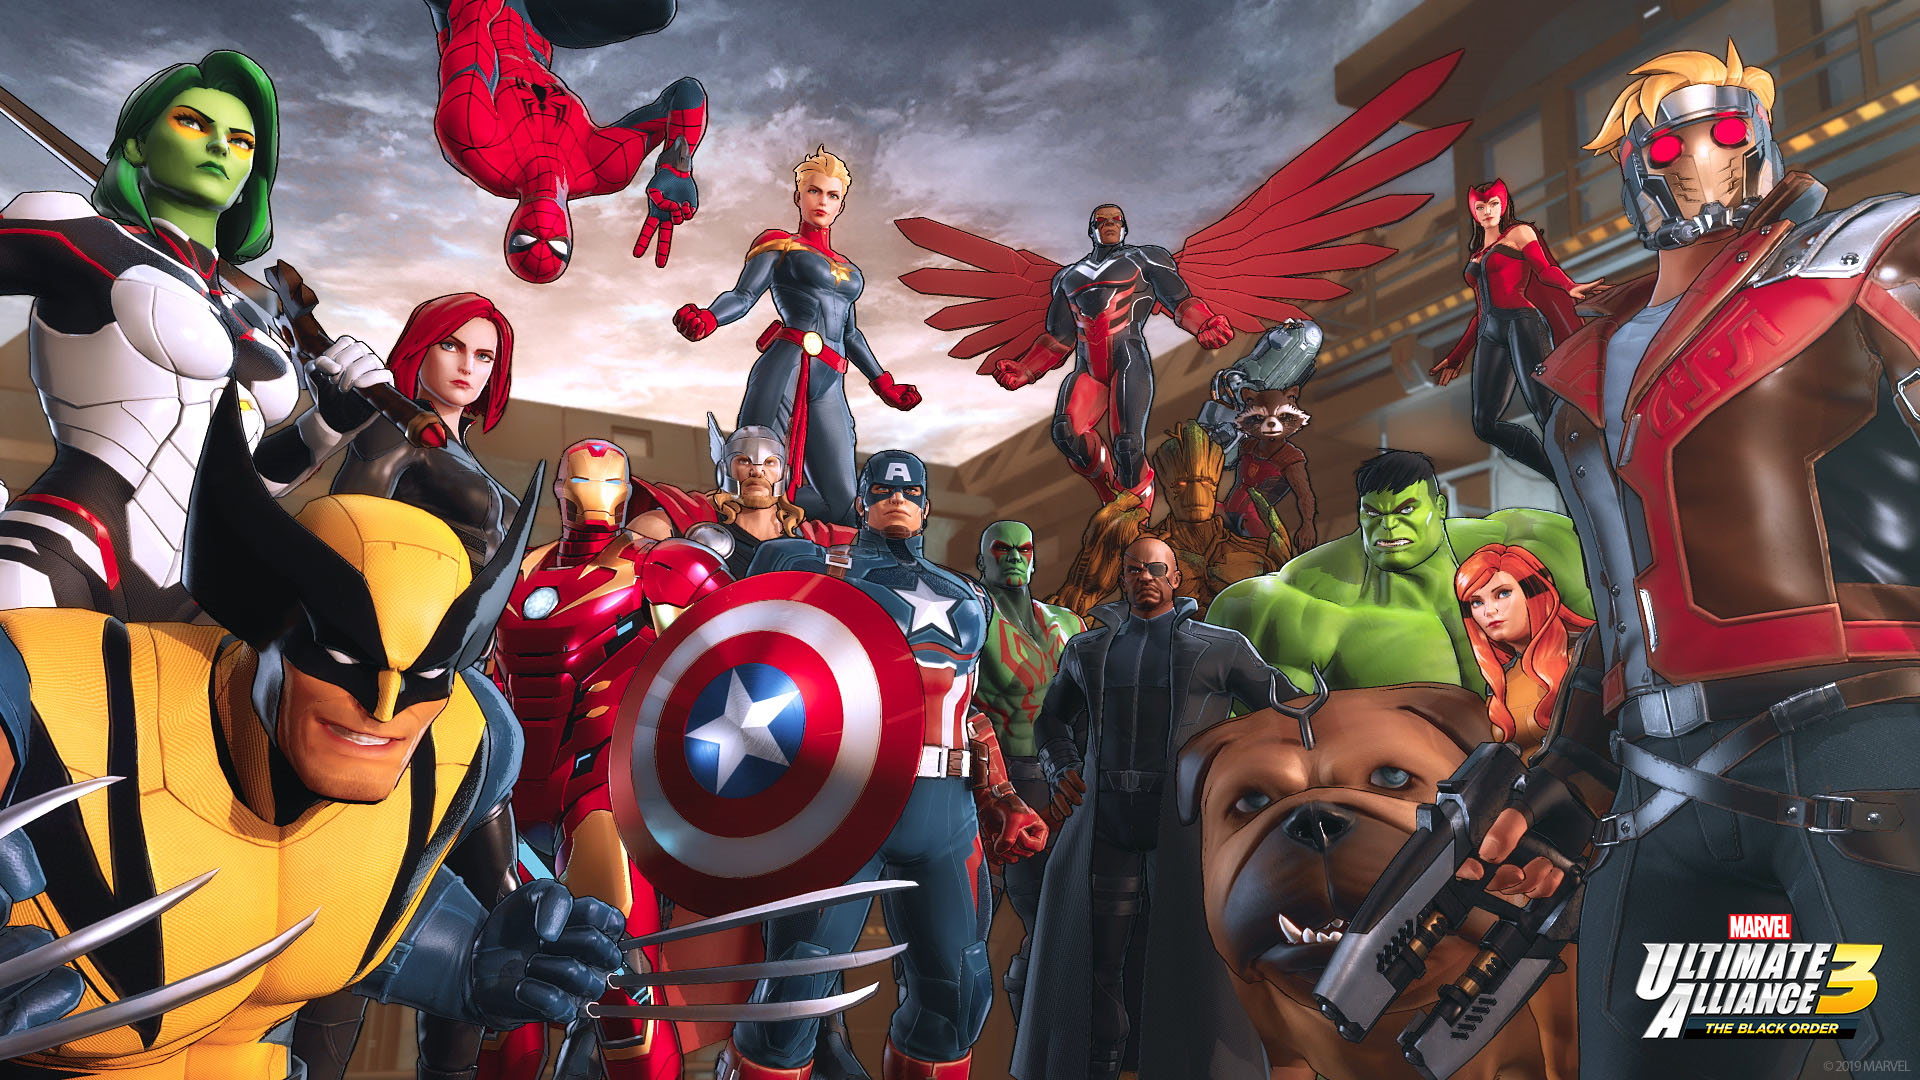 Marvel: Ultimate alliance 3: The black order